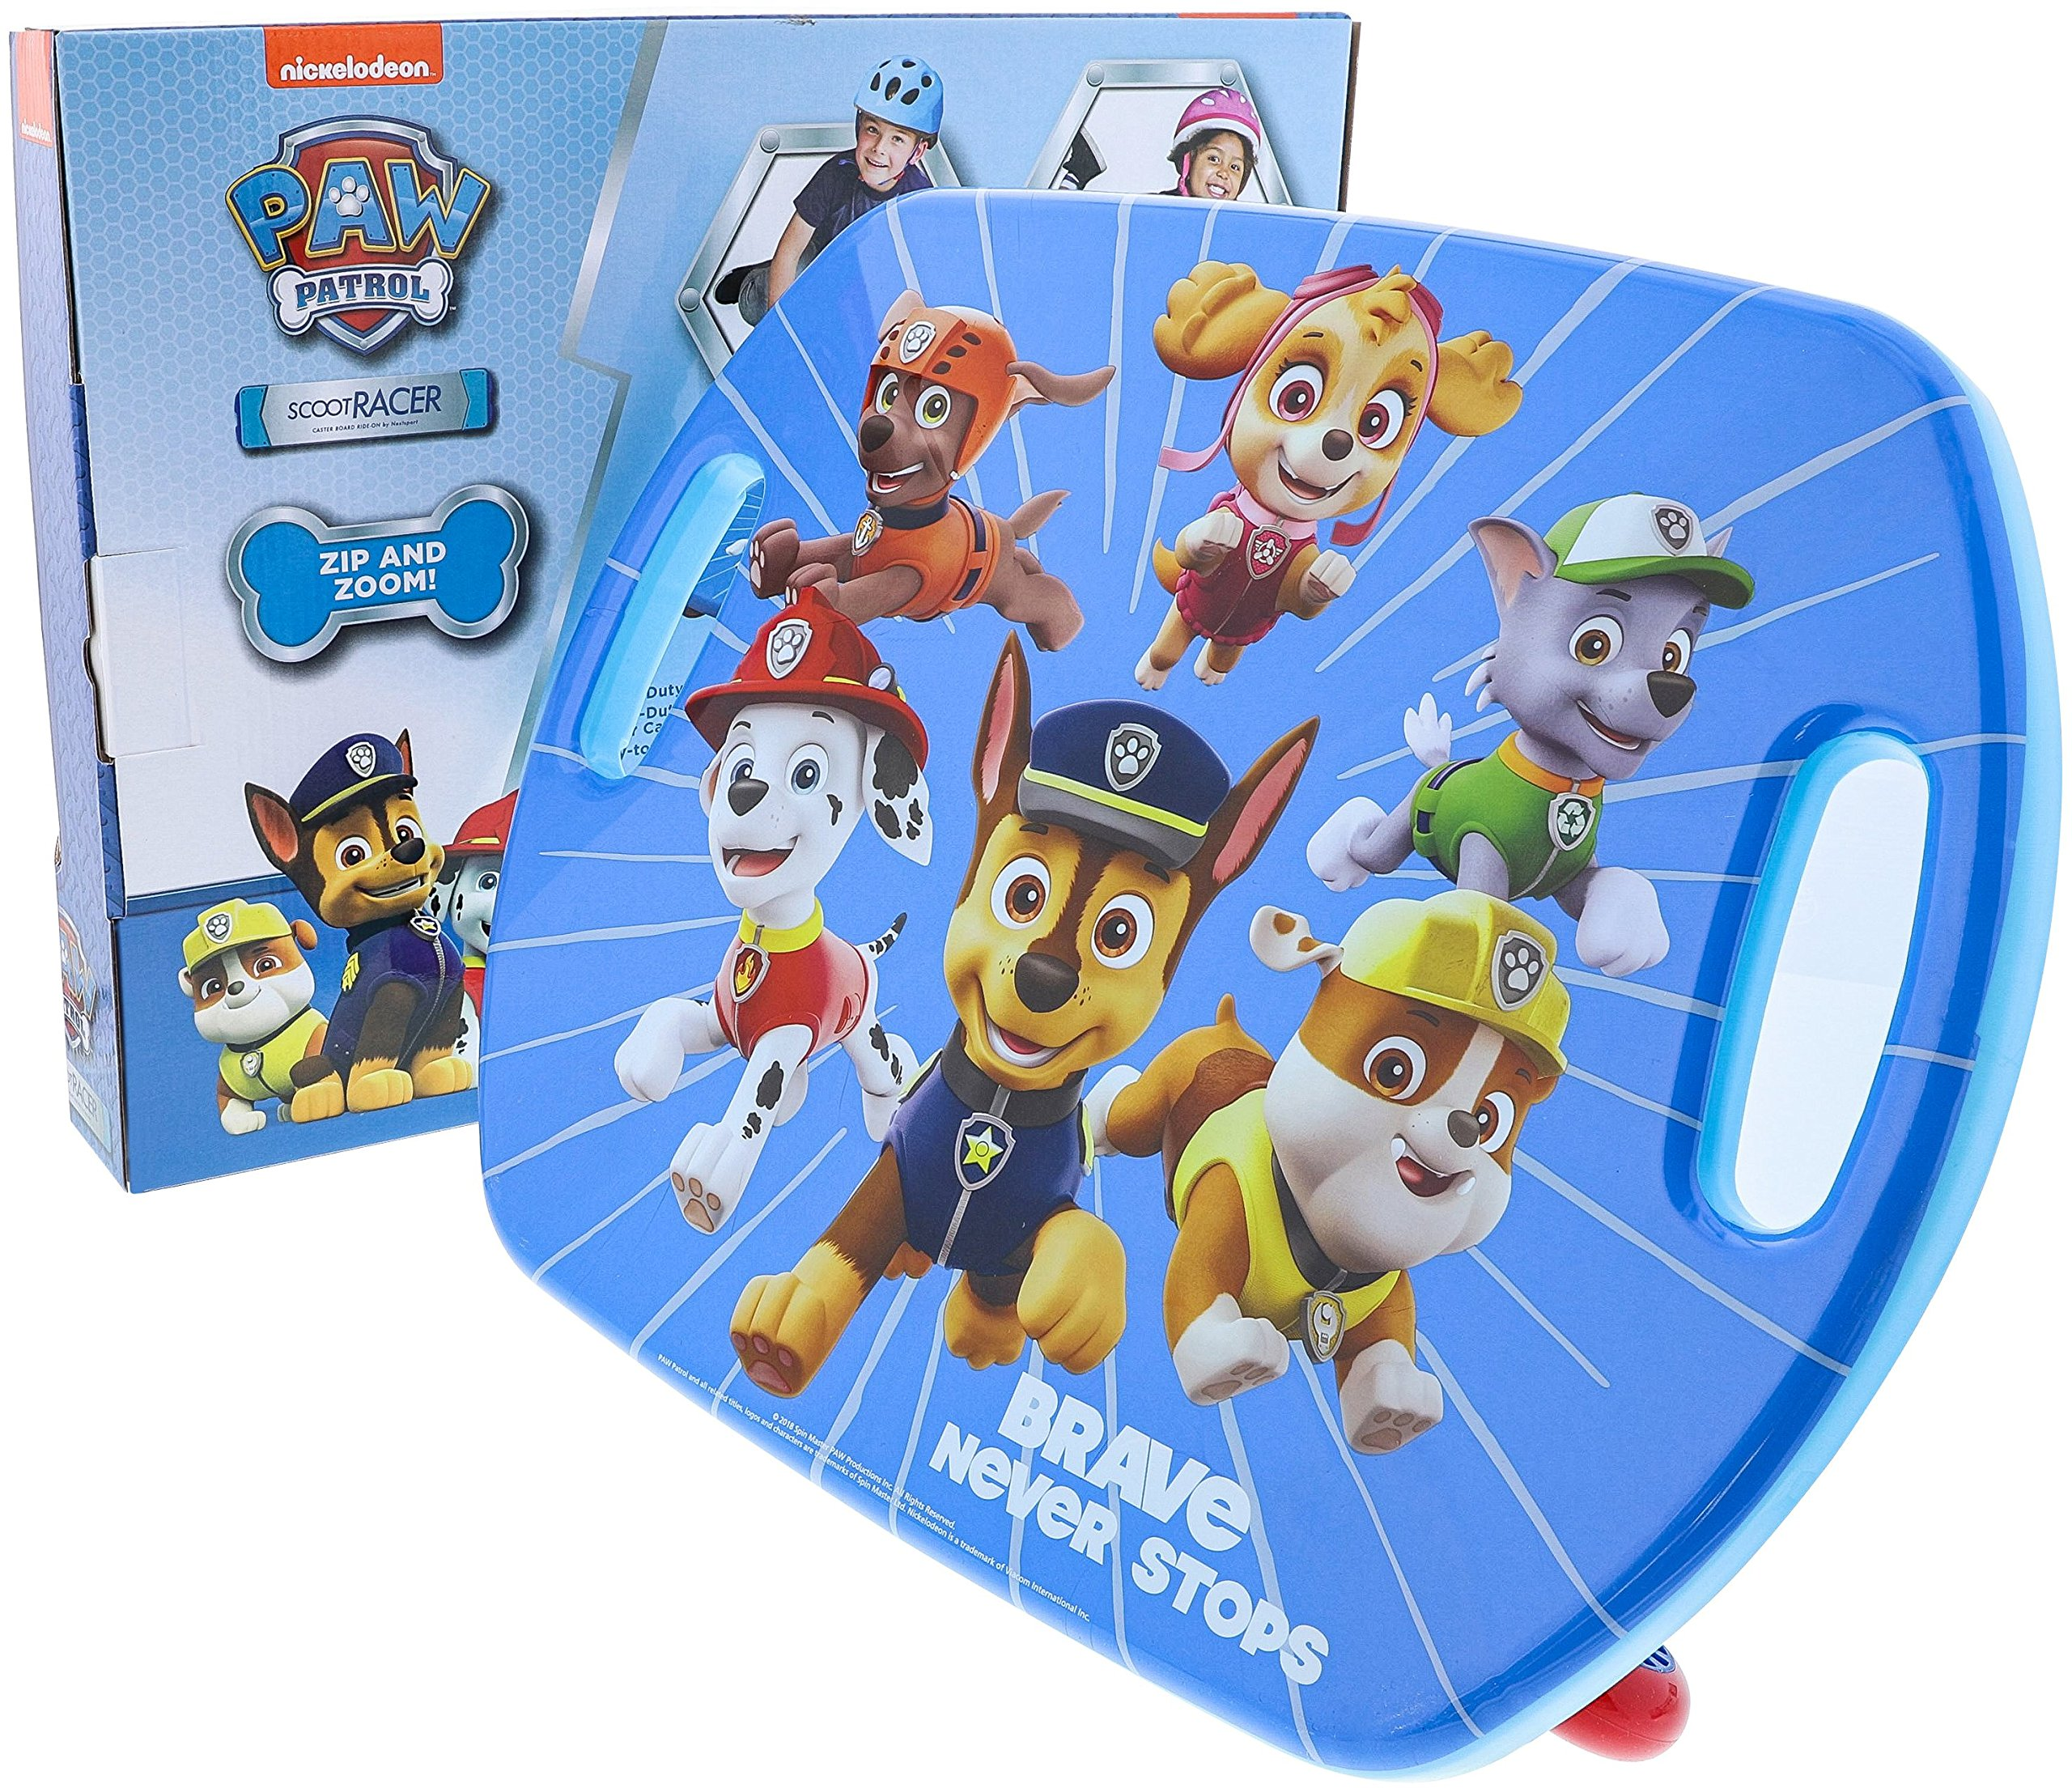 Nextsport Scoot Board Scooter Board with Casters for Kids (Scoot Racer Paw Patrol, 16.5'' x 13.5'') by Nextsport